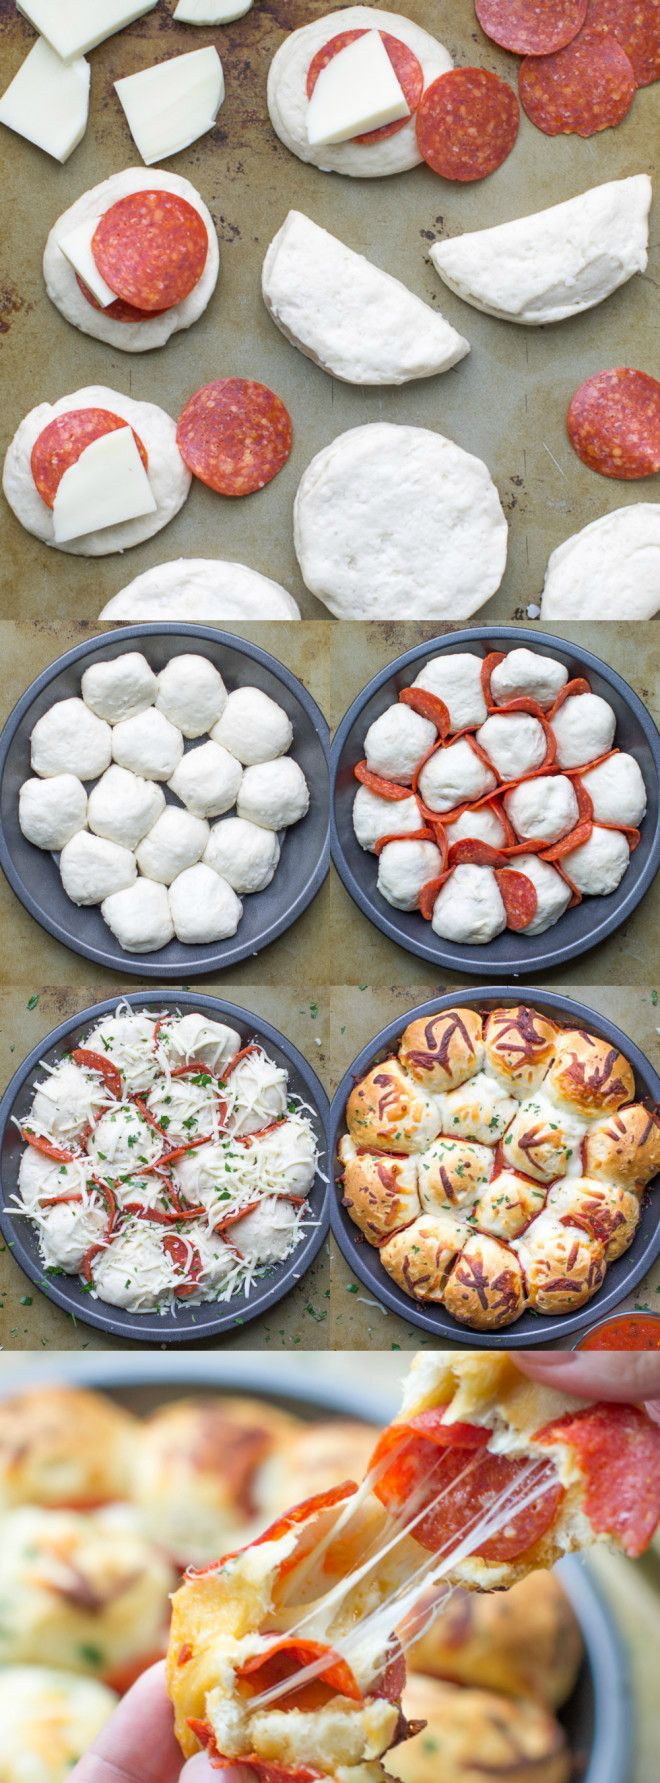 Cheese and Pepperoni Pizza Bites